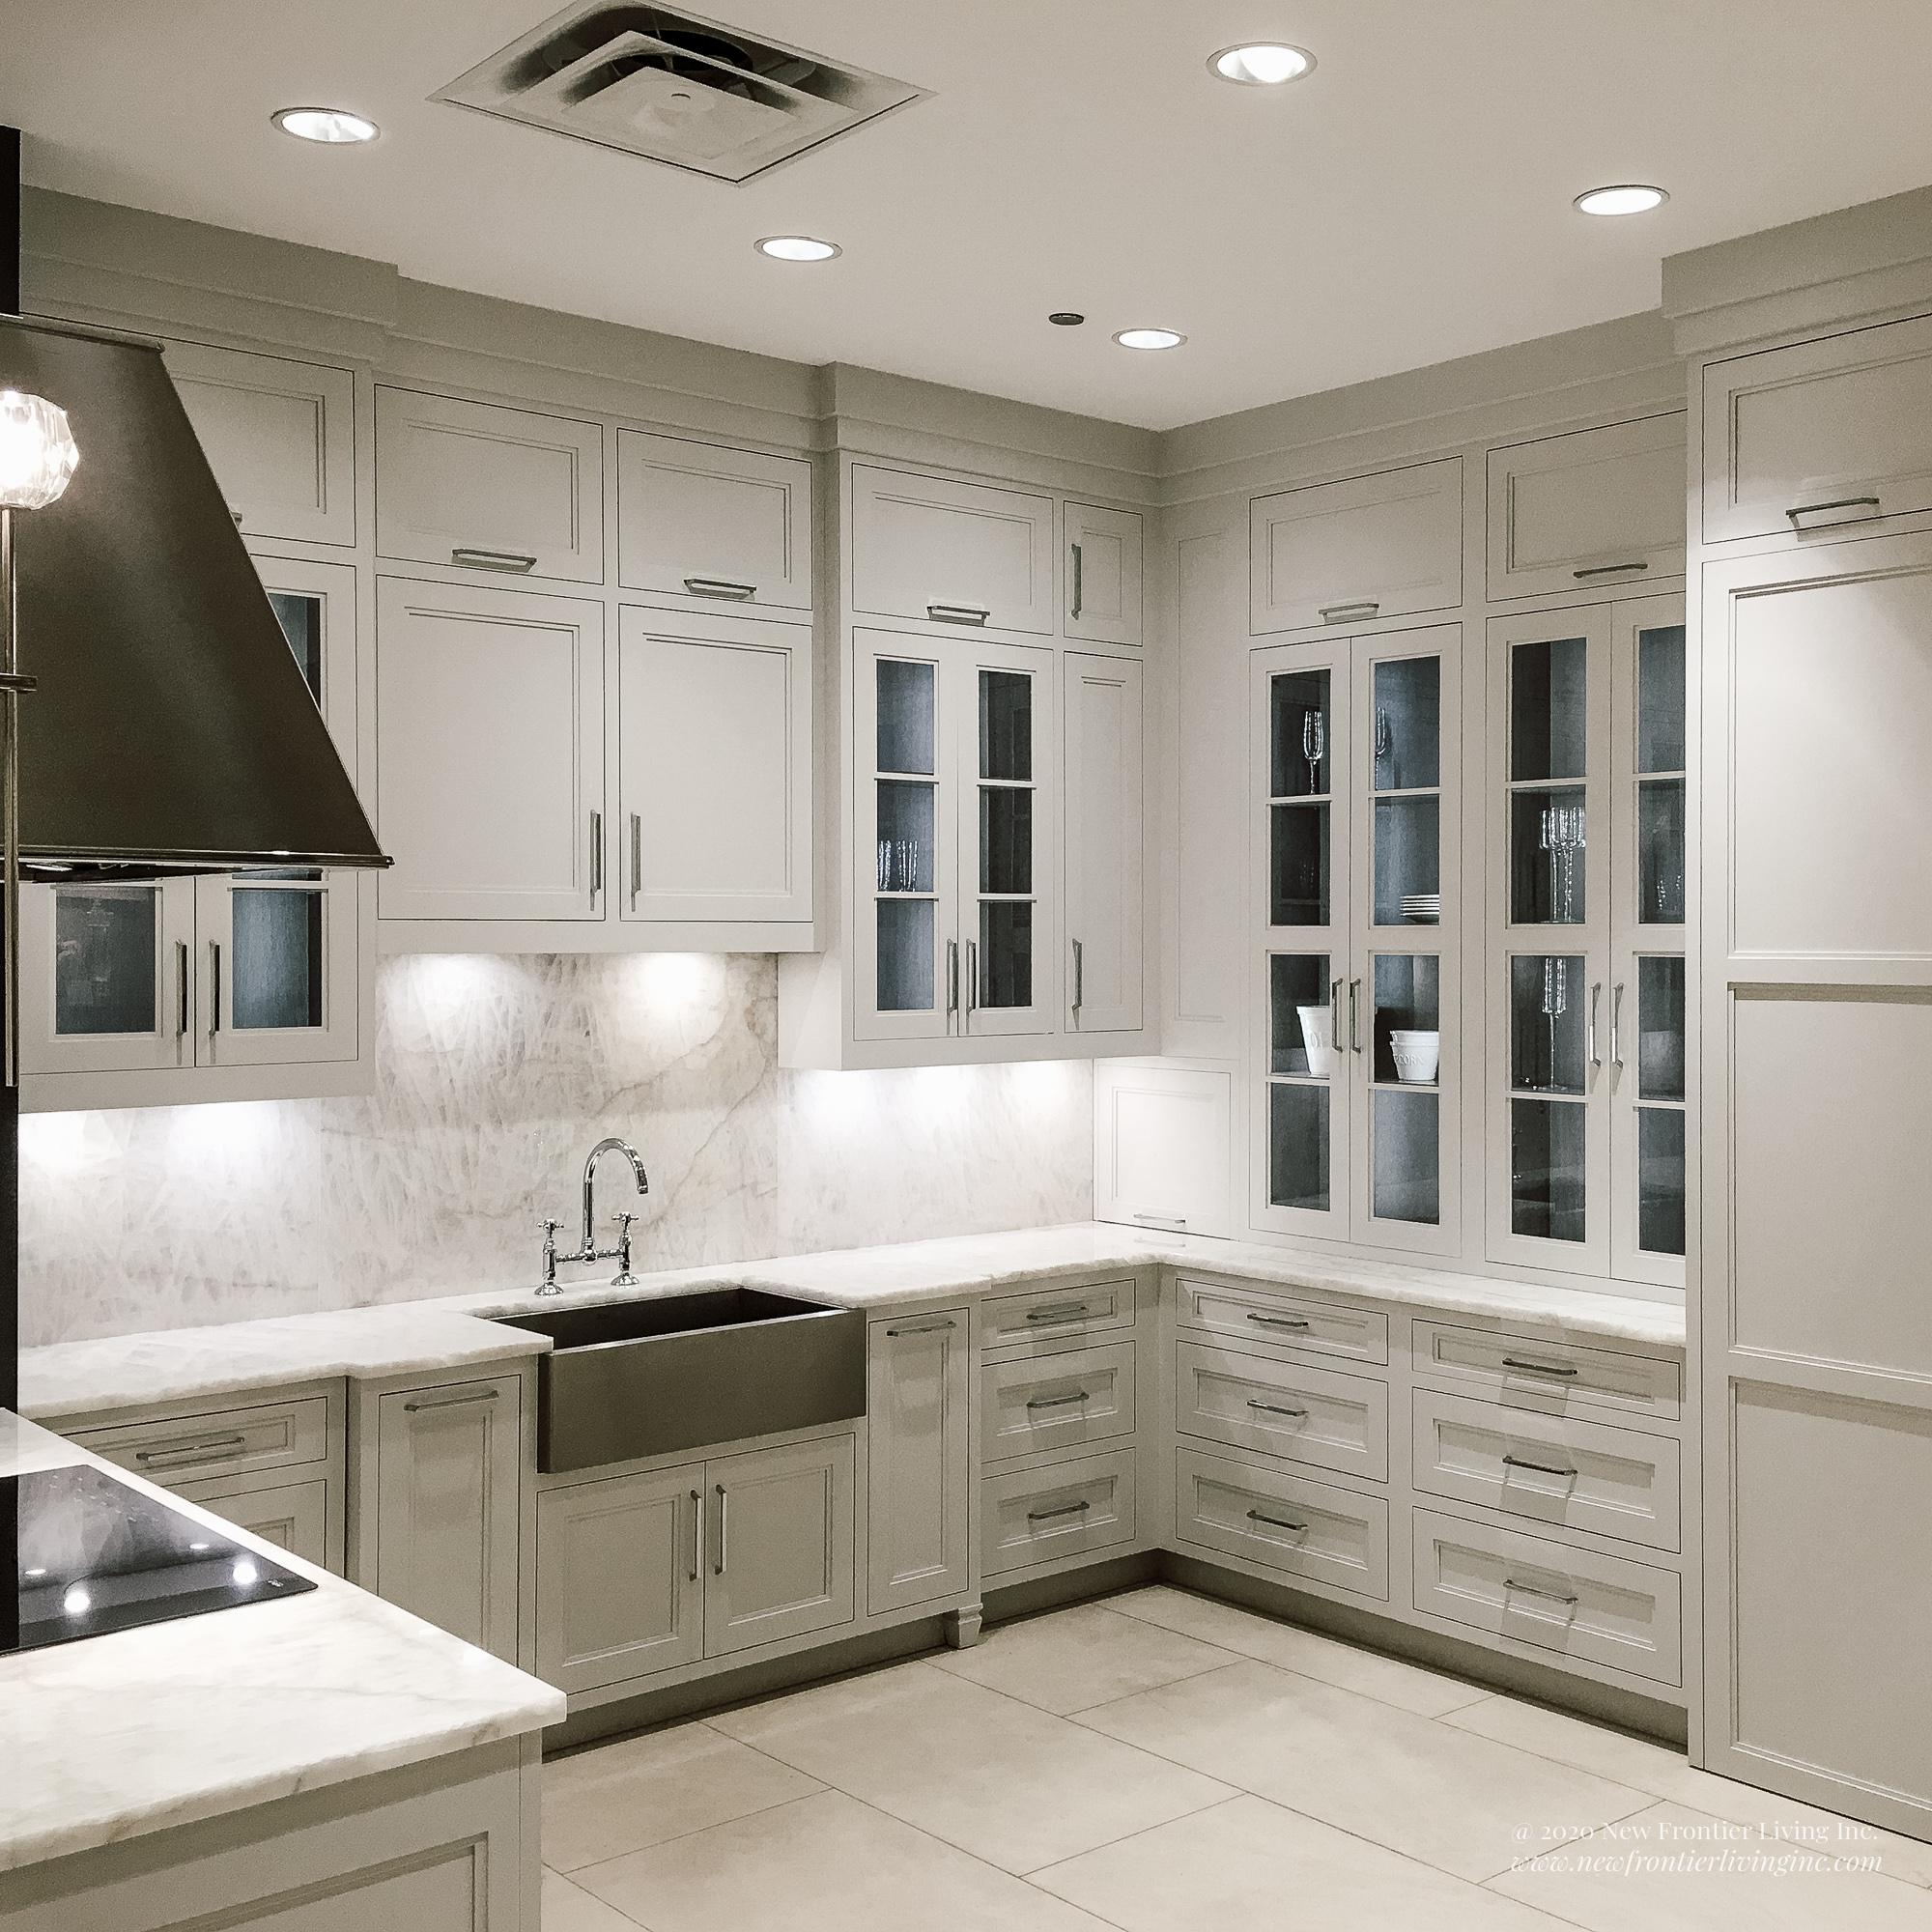 C-shaped traditional cream kitchen with glass upper cabinetry